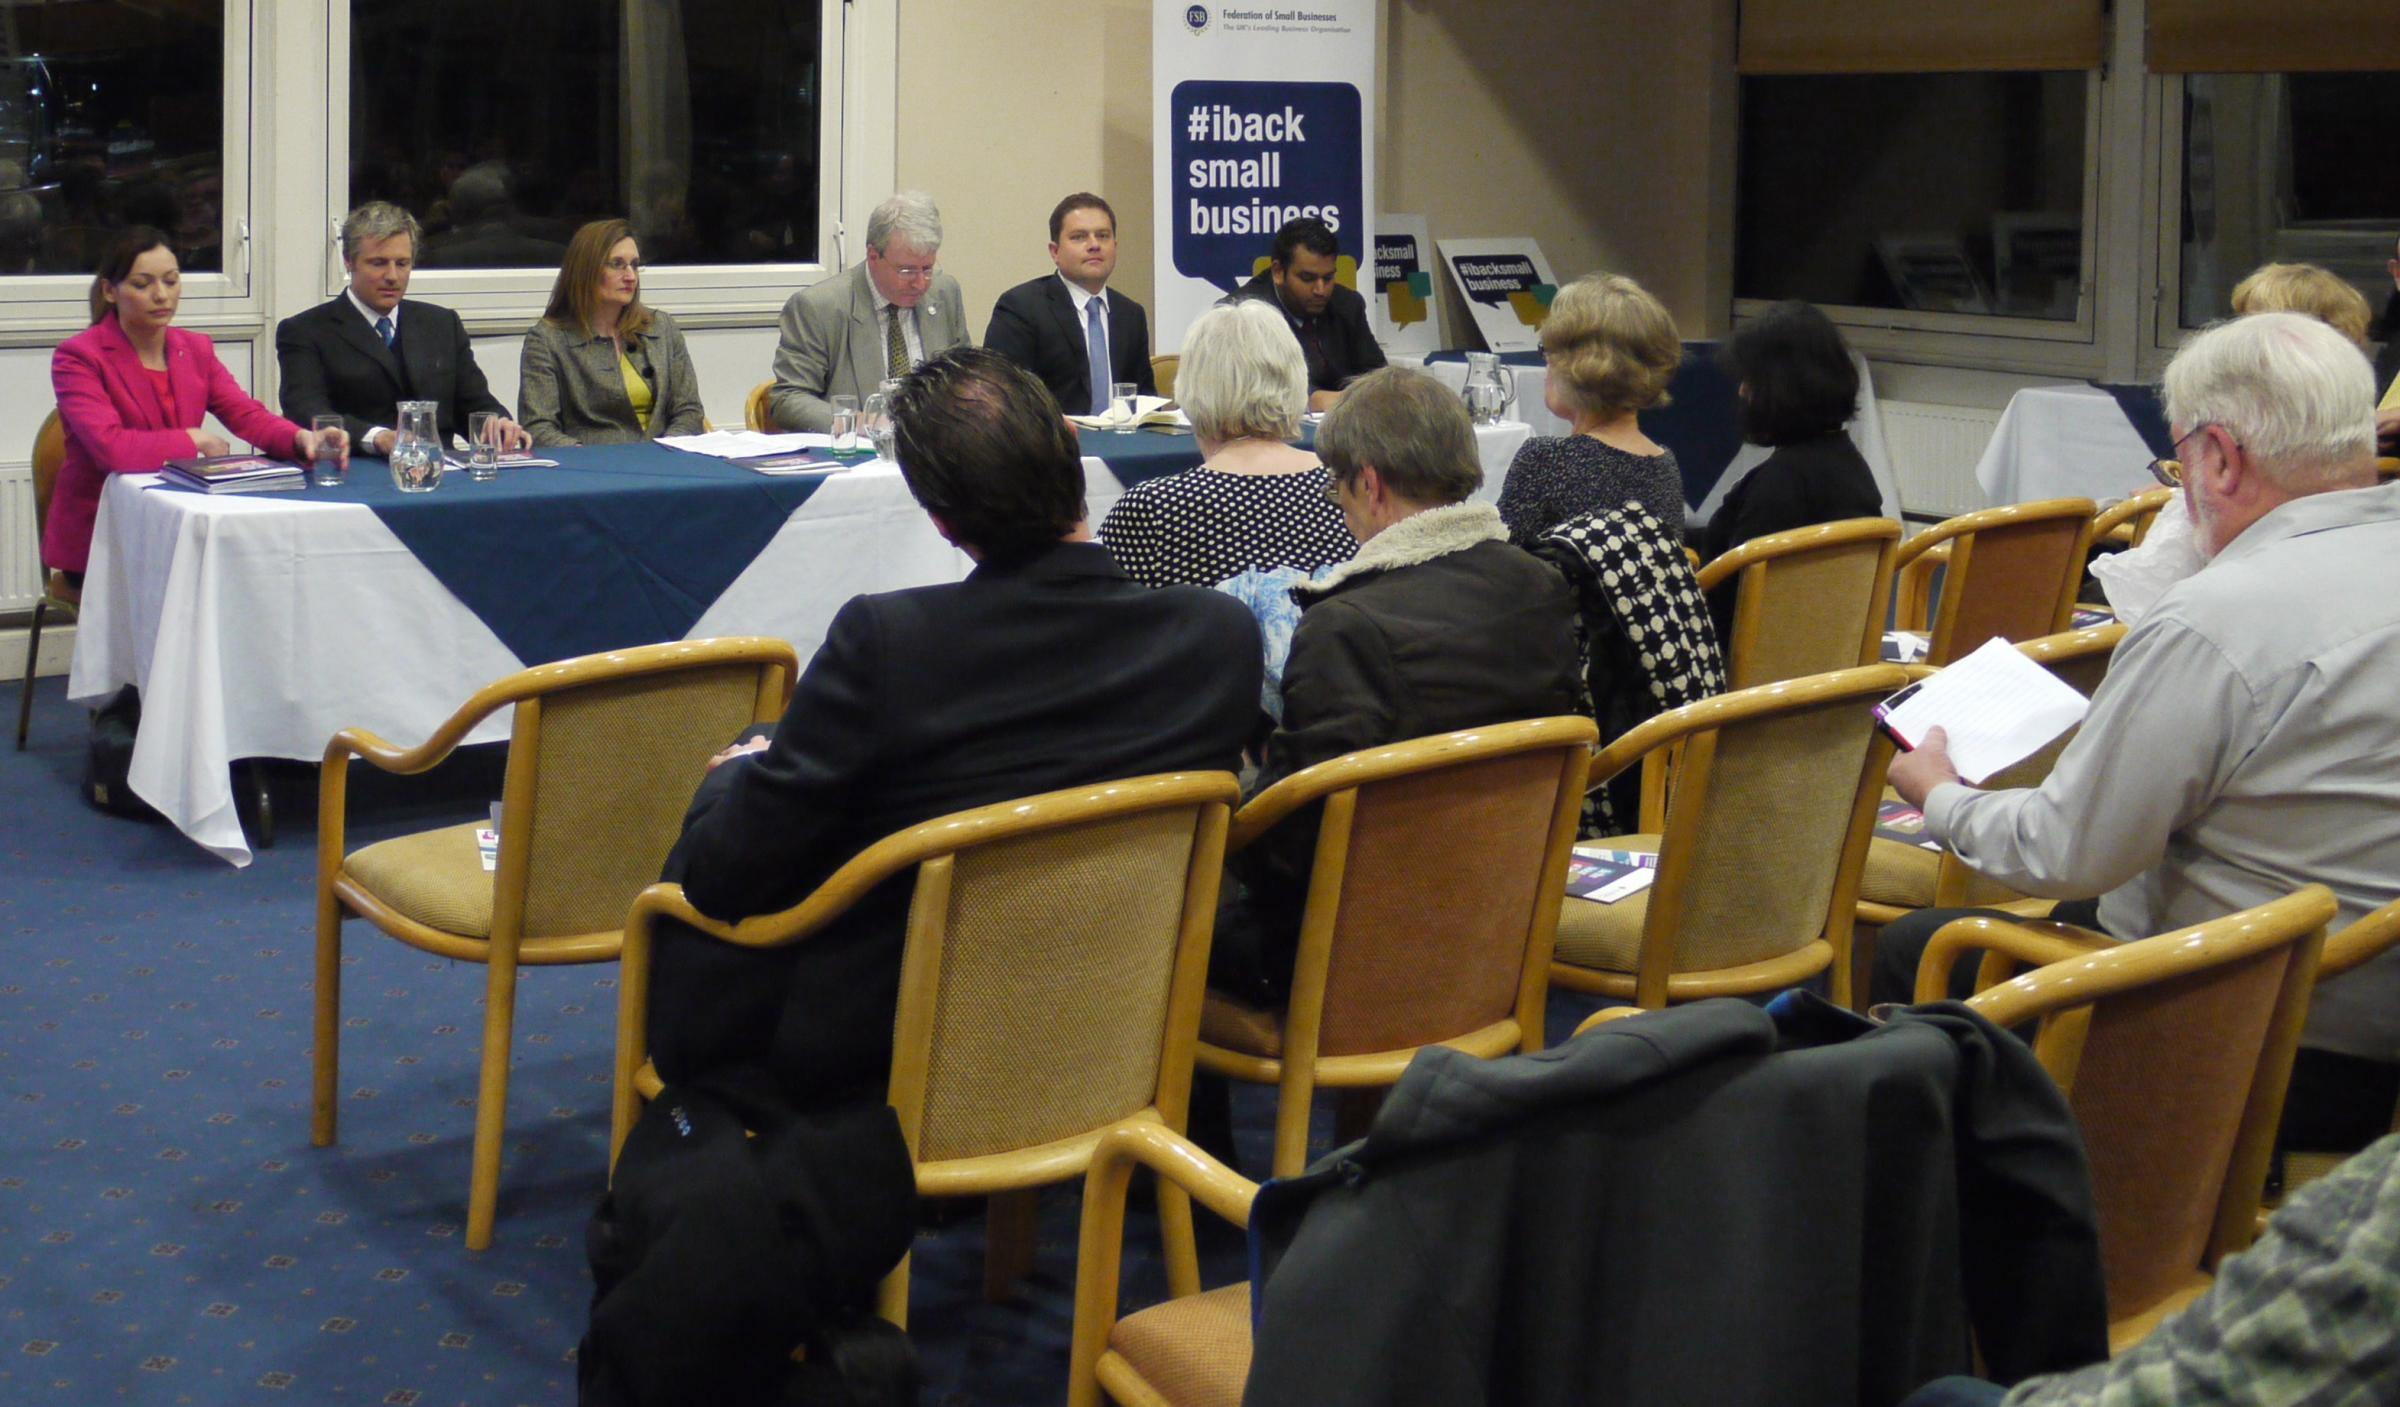 Richmond Park candidates go head-to-head at Federation of Small Businesses hustings